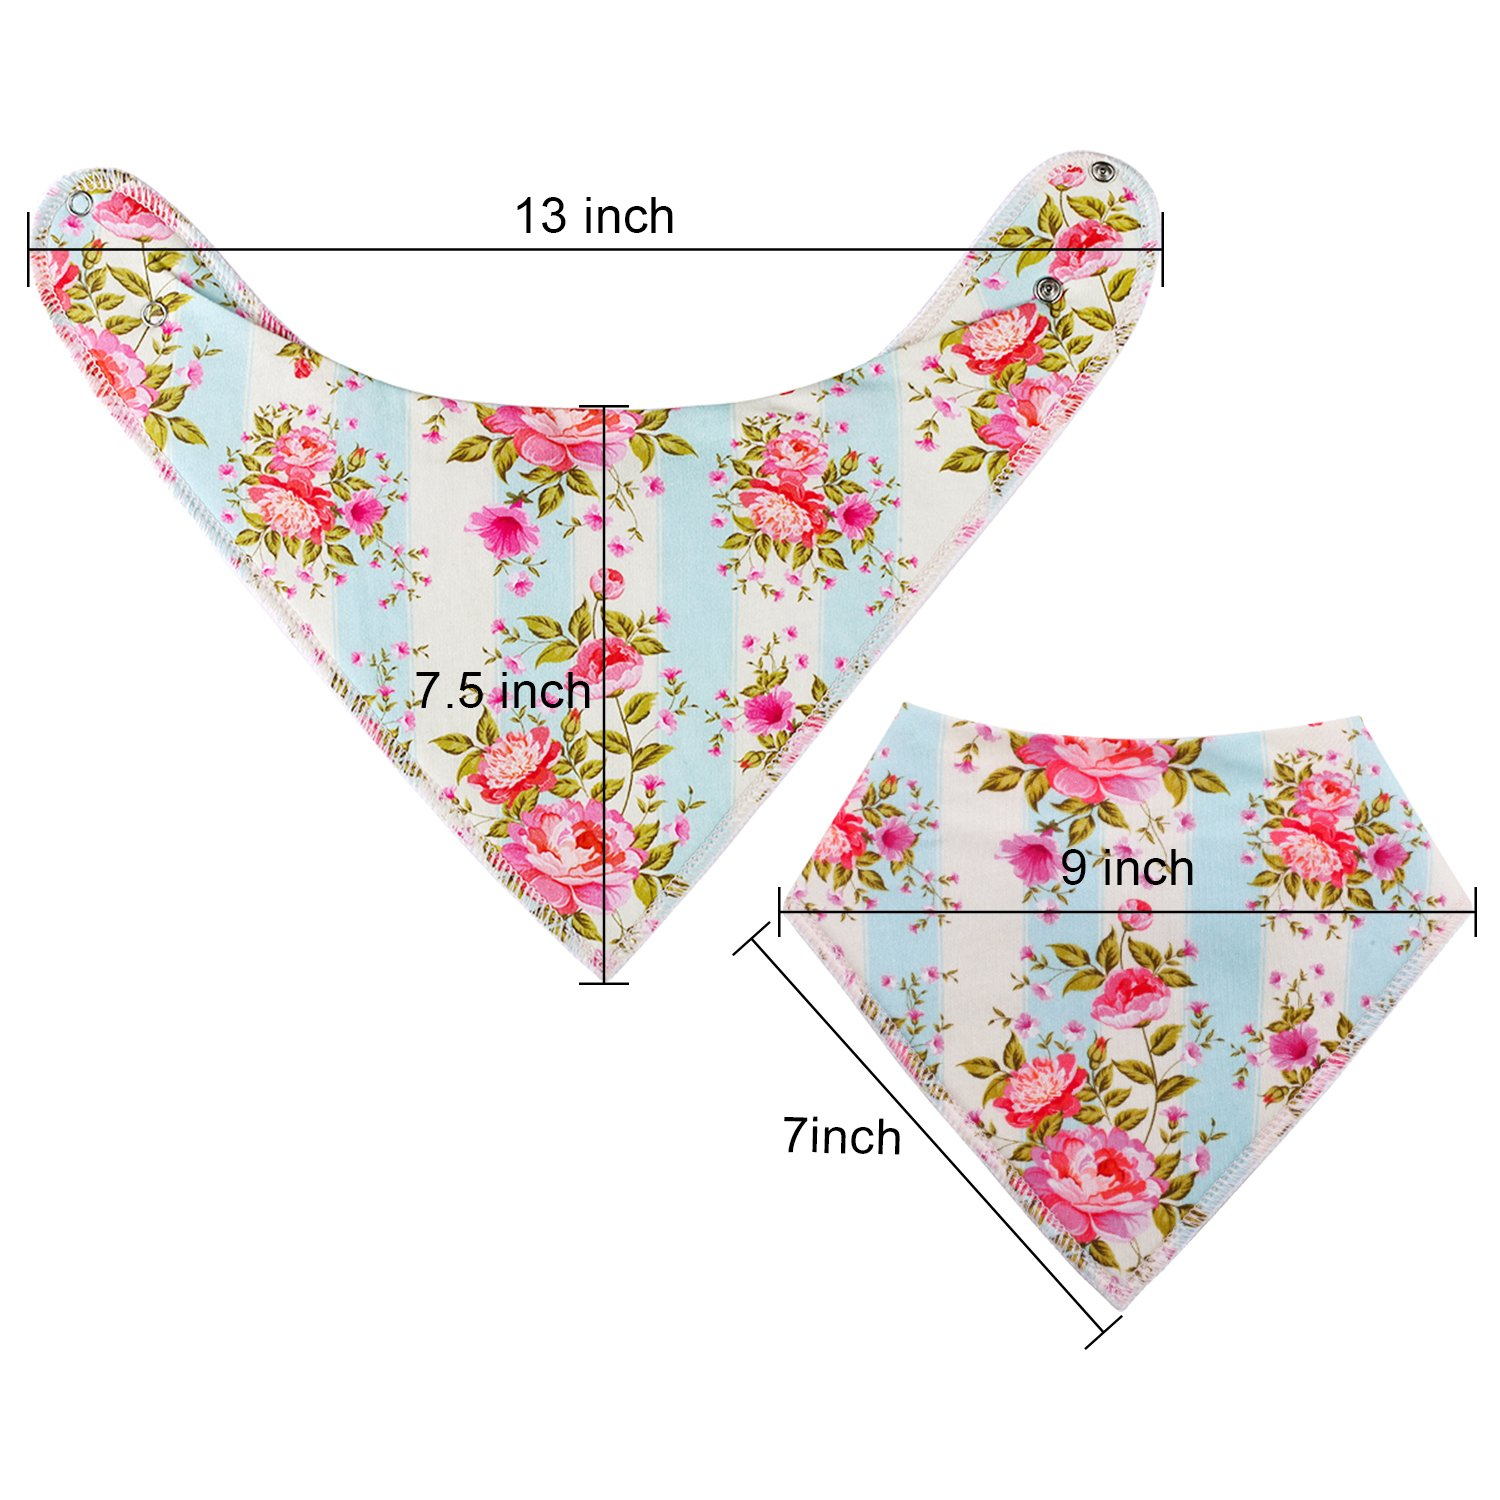 """10-Pack Baby Bandana Bibs Upsimples Baby Girl Bibs for Drooling and Teething, 100% Organic Cotton and Super Absorbent Hypoallergenic Bibs Baby Shower Gift - """"Blossom Set"""" by upsimples (Image #9)"""